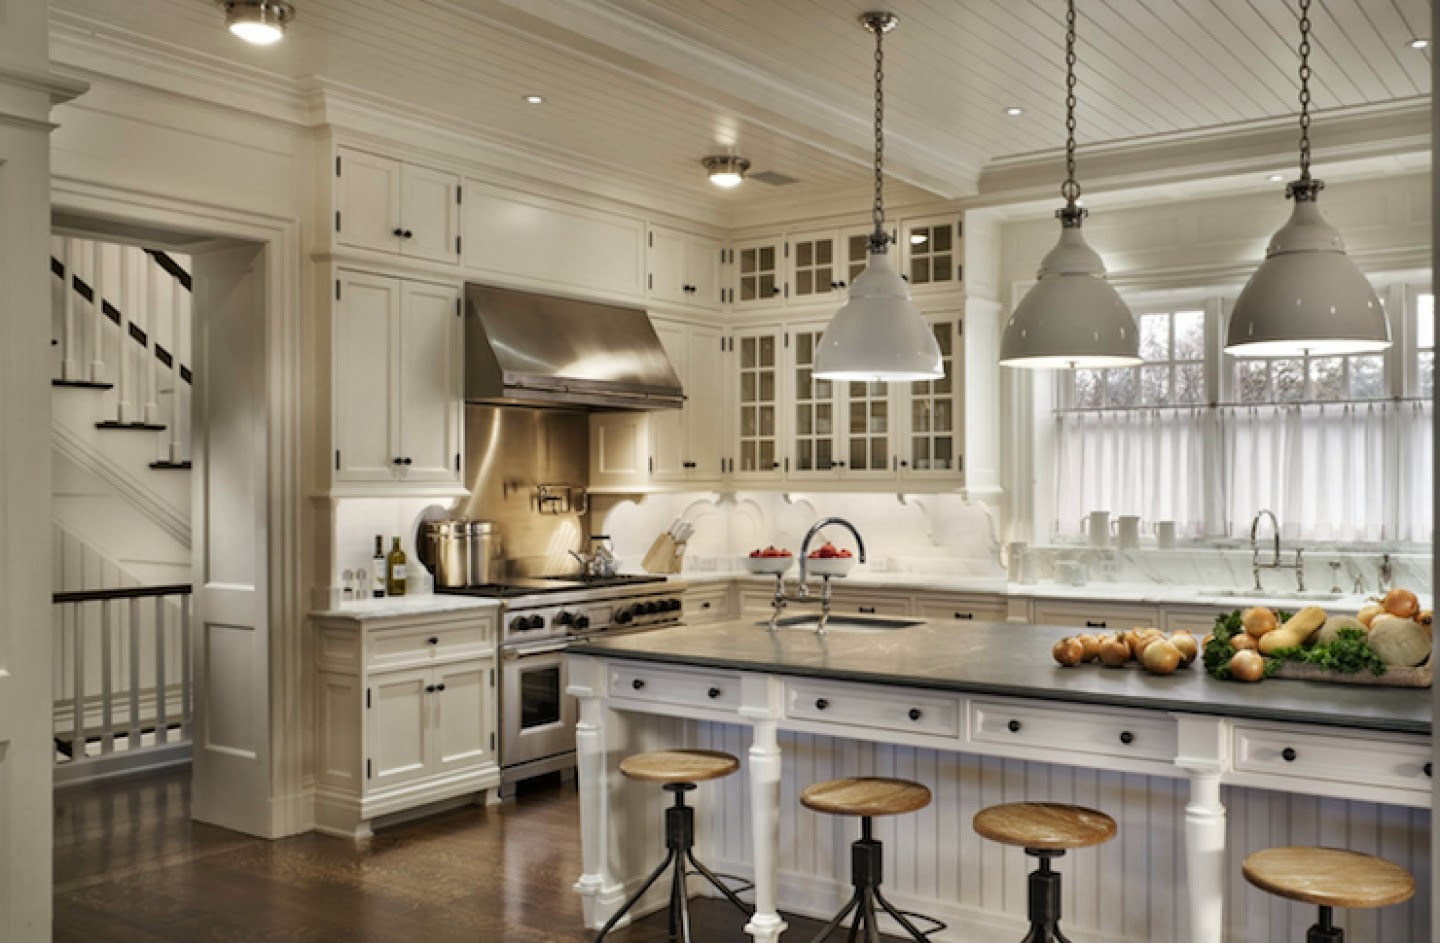 South Shore Decorating Blog: Beauftiful White Kitchens: Always in ...